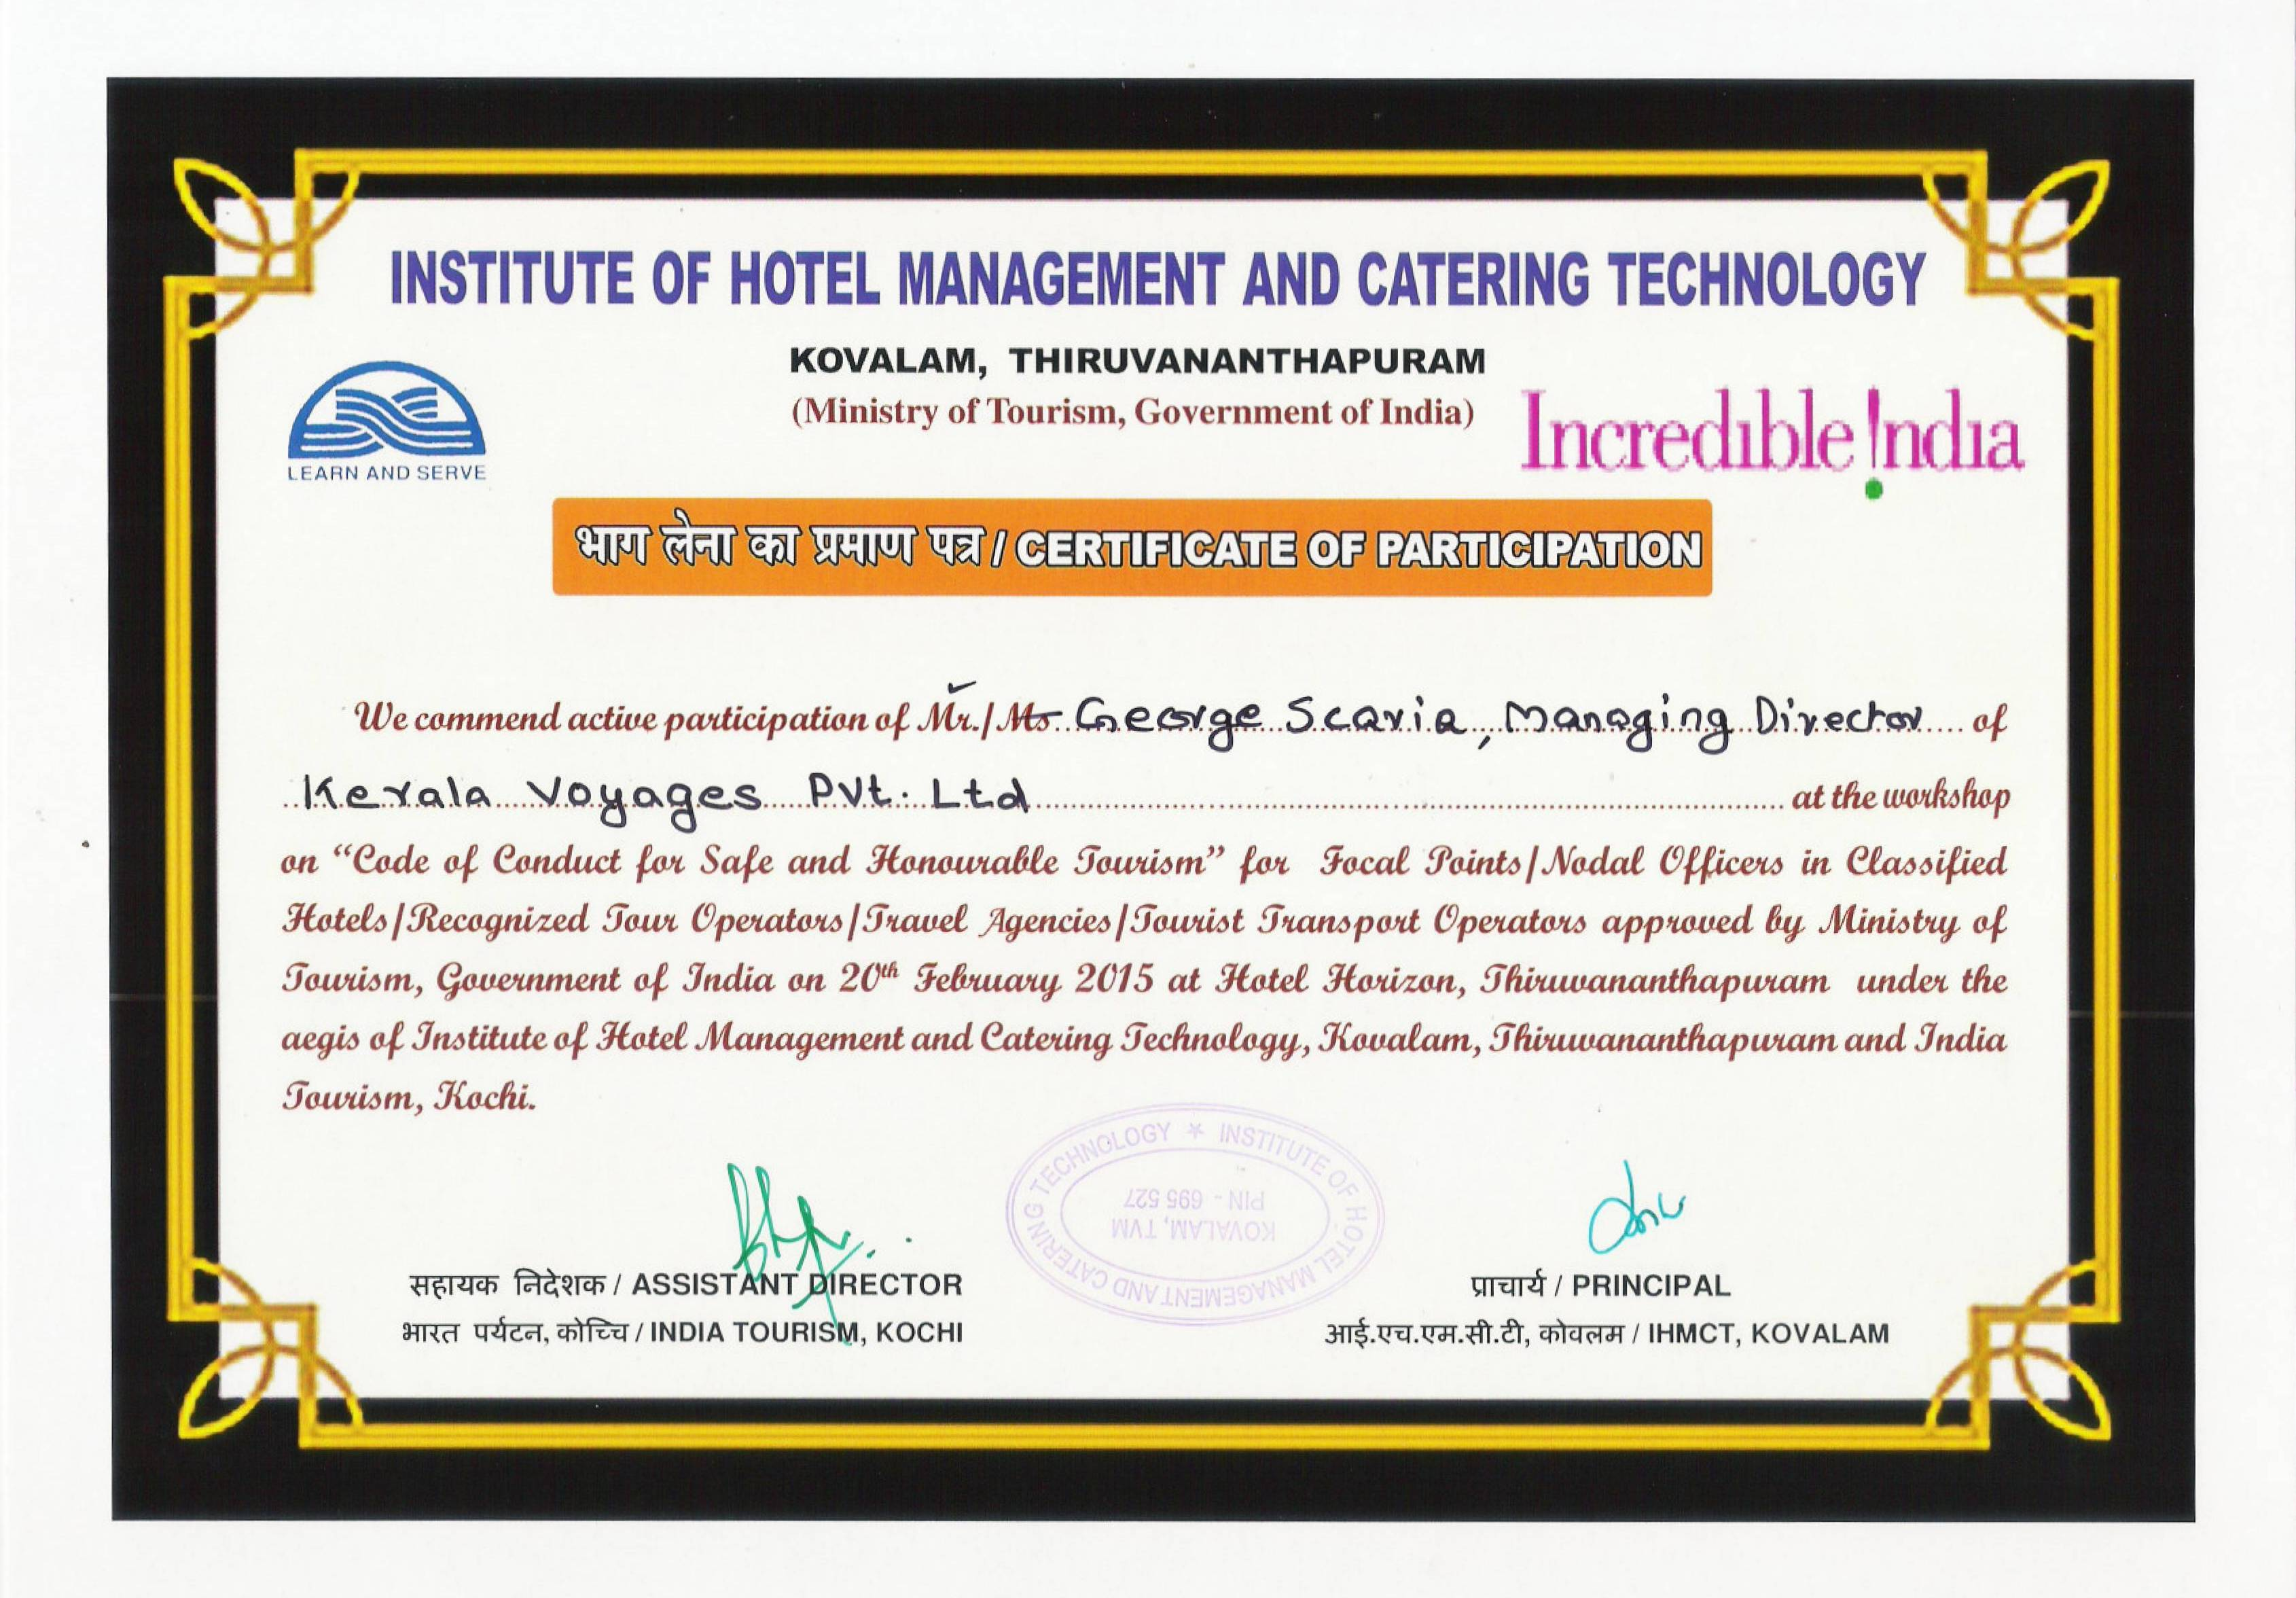 Accreditation and affiliations of kerala voyages india pvt ltd accredited by govt of india ministry of tourism yelopaper Choice Image